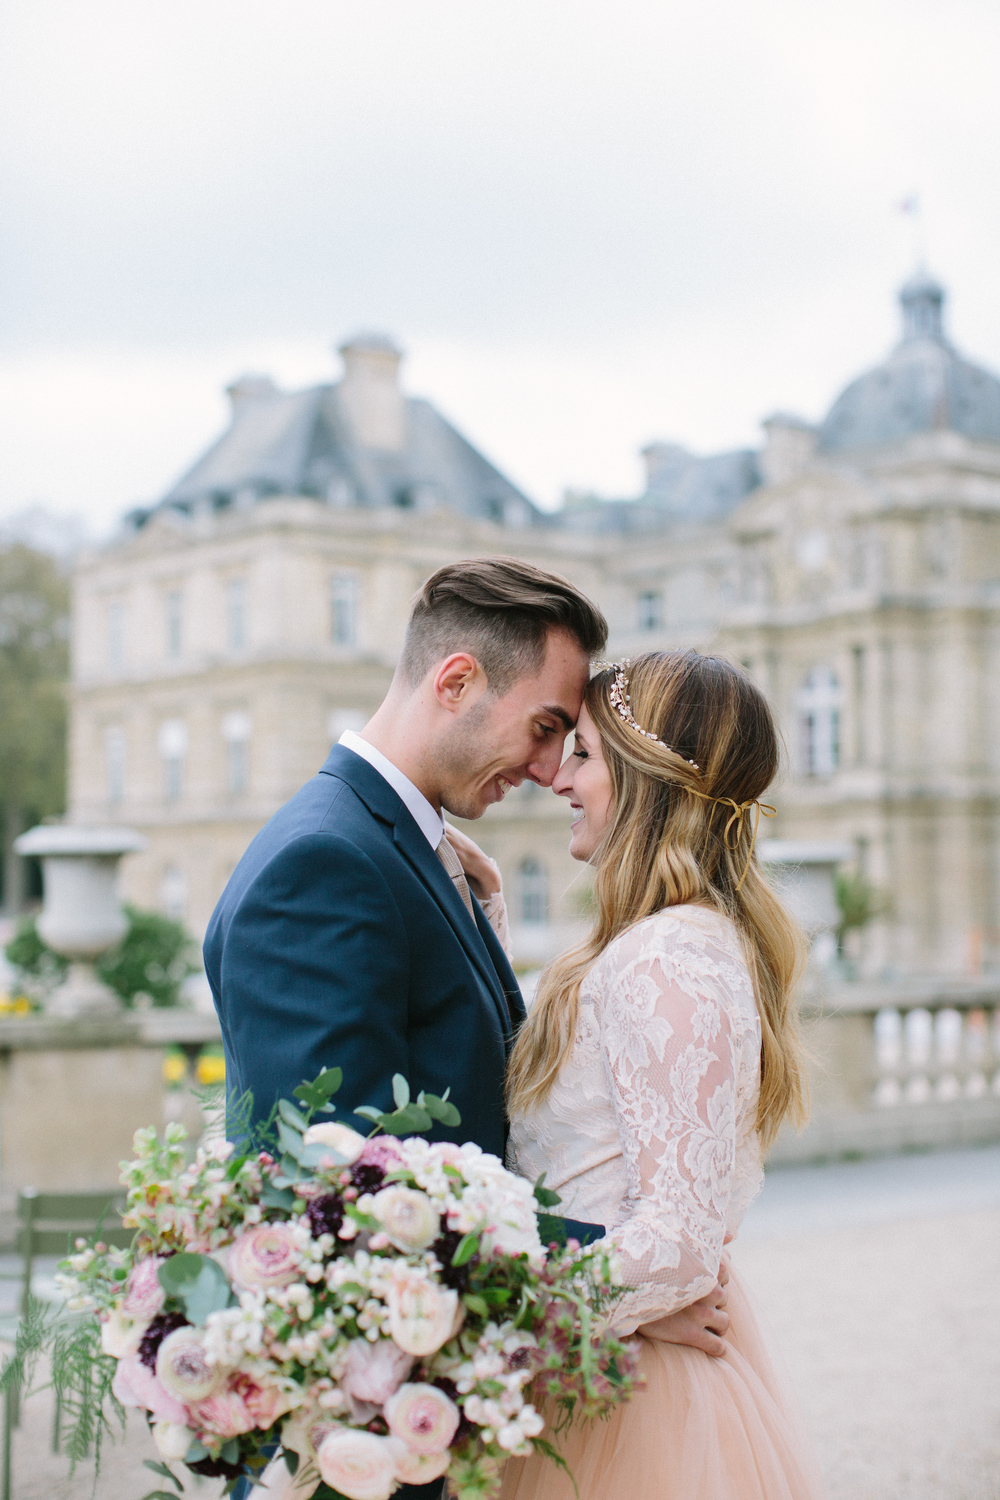 Amanda + Cole, Paris Styled Photoshoot